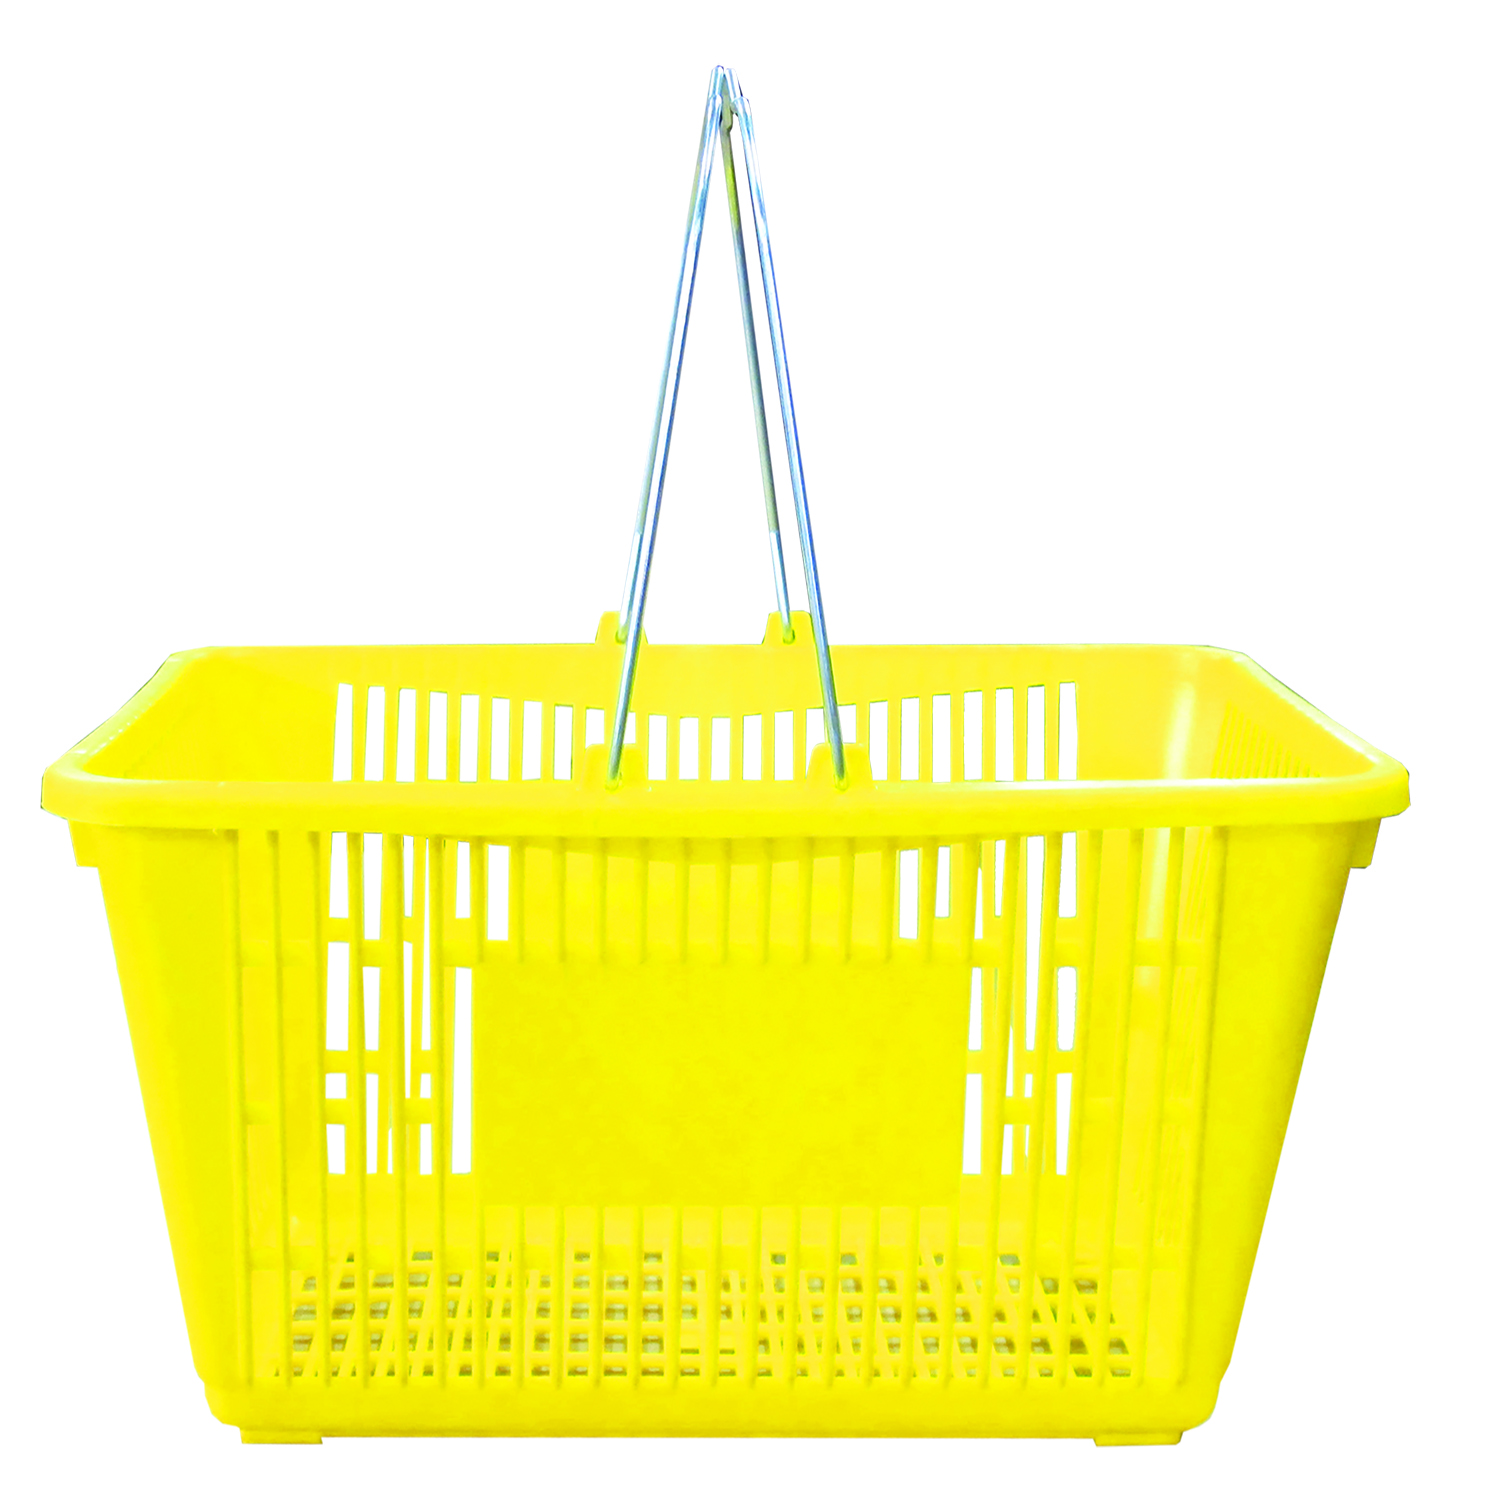 Regular Baskets, Yellow (set of 16)